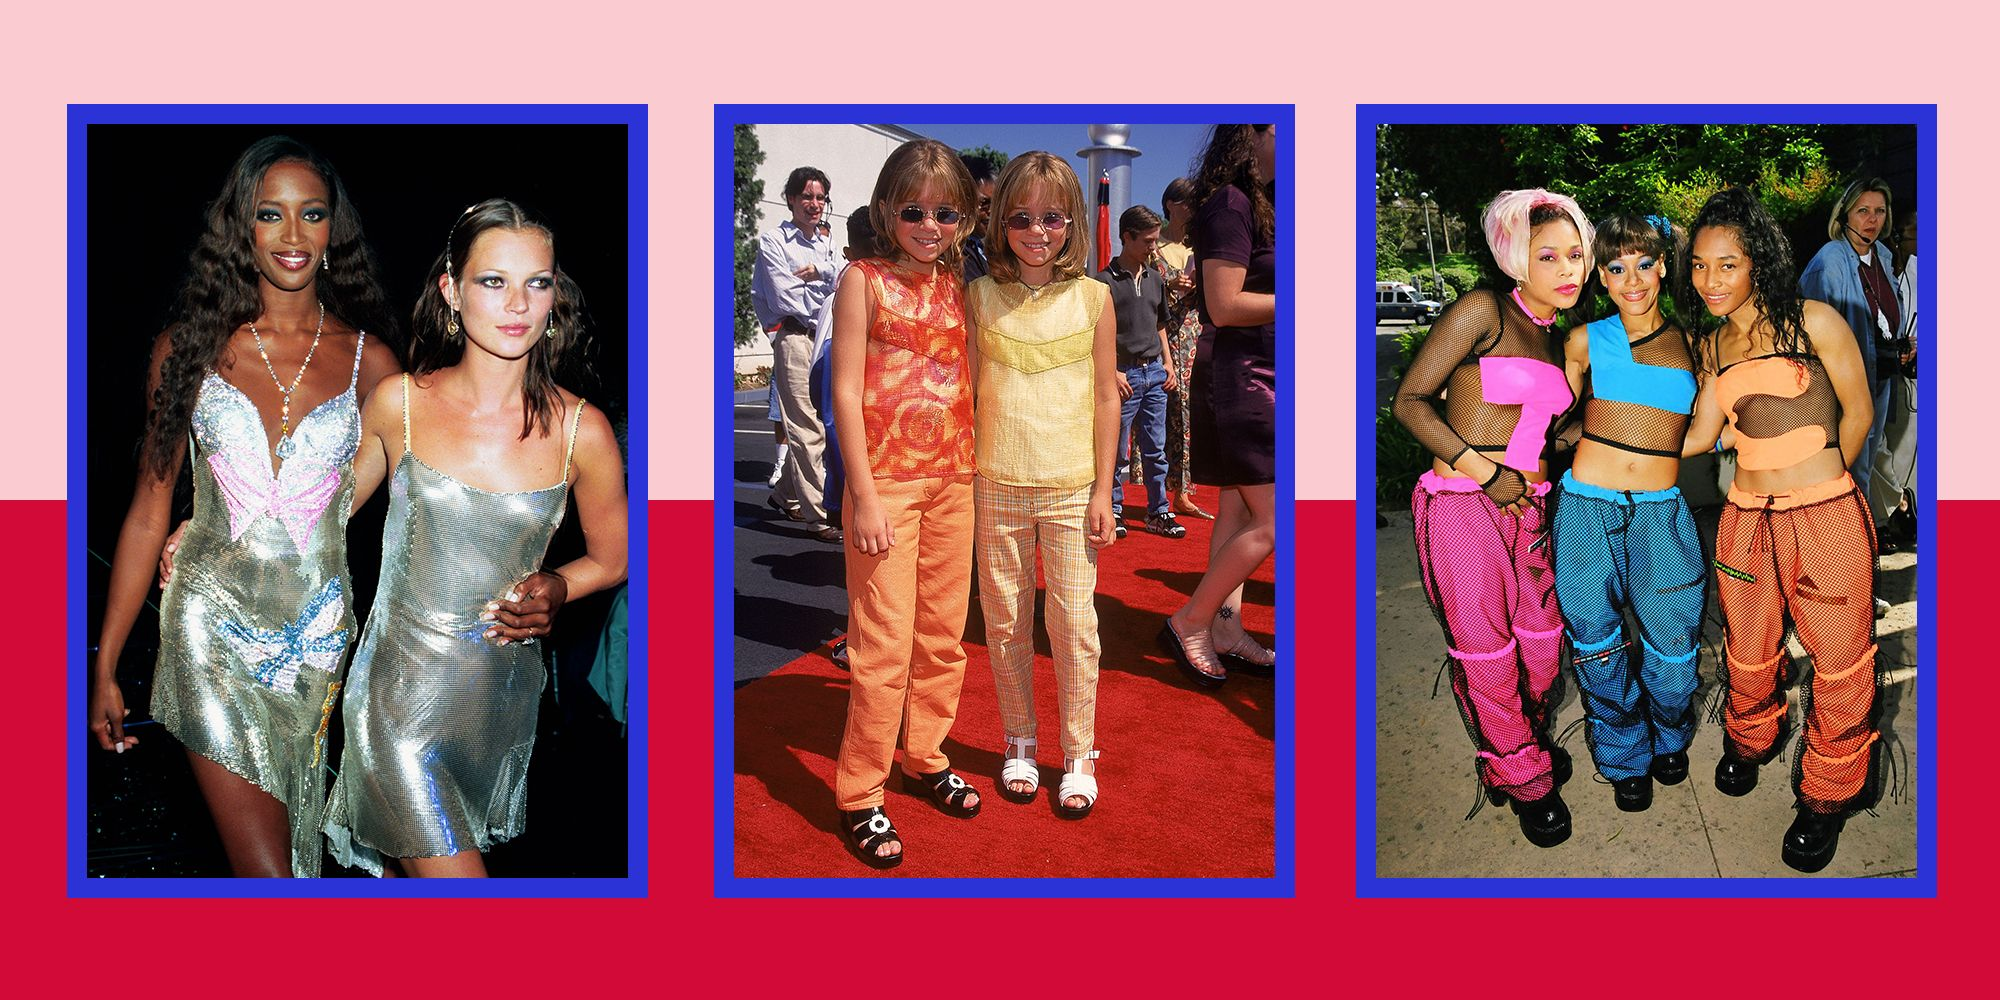 The 30 Most Memorable Fashion Moments of the '90s